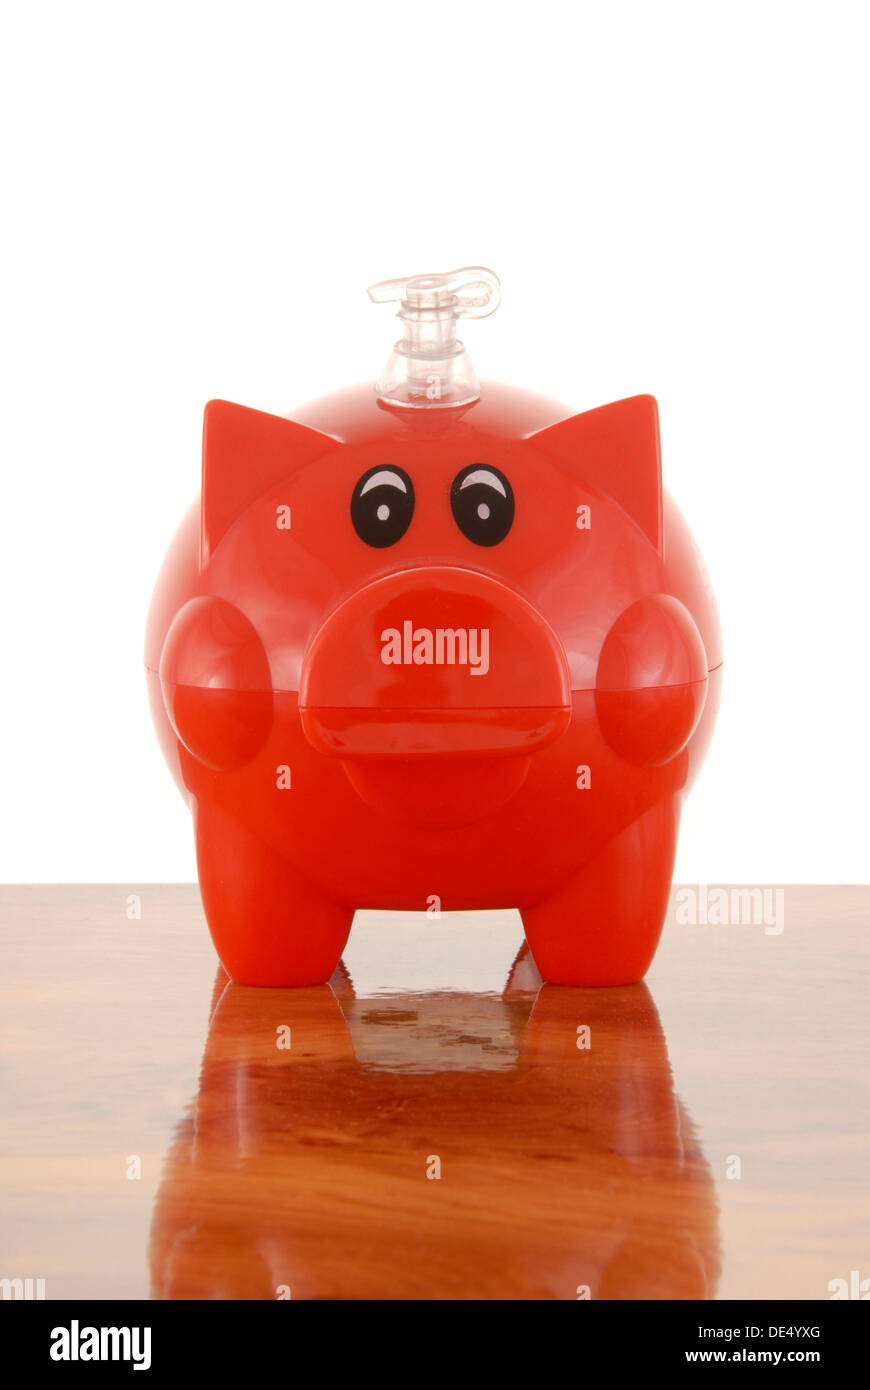 Piggybank with valve, symbolic image for inflated banks - Stock Image